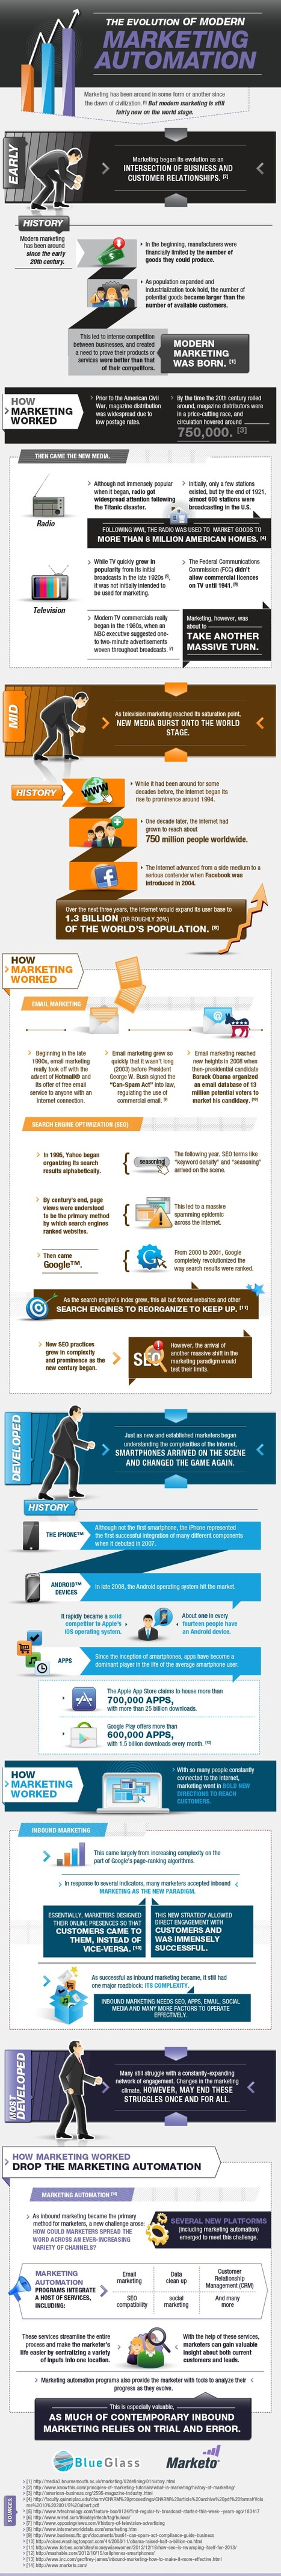 How the Evolution of Modern Marketing Is Changing B2B Marketing [Infographic] | Daily SMART Marketing | Scoop.it